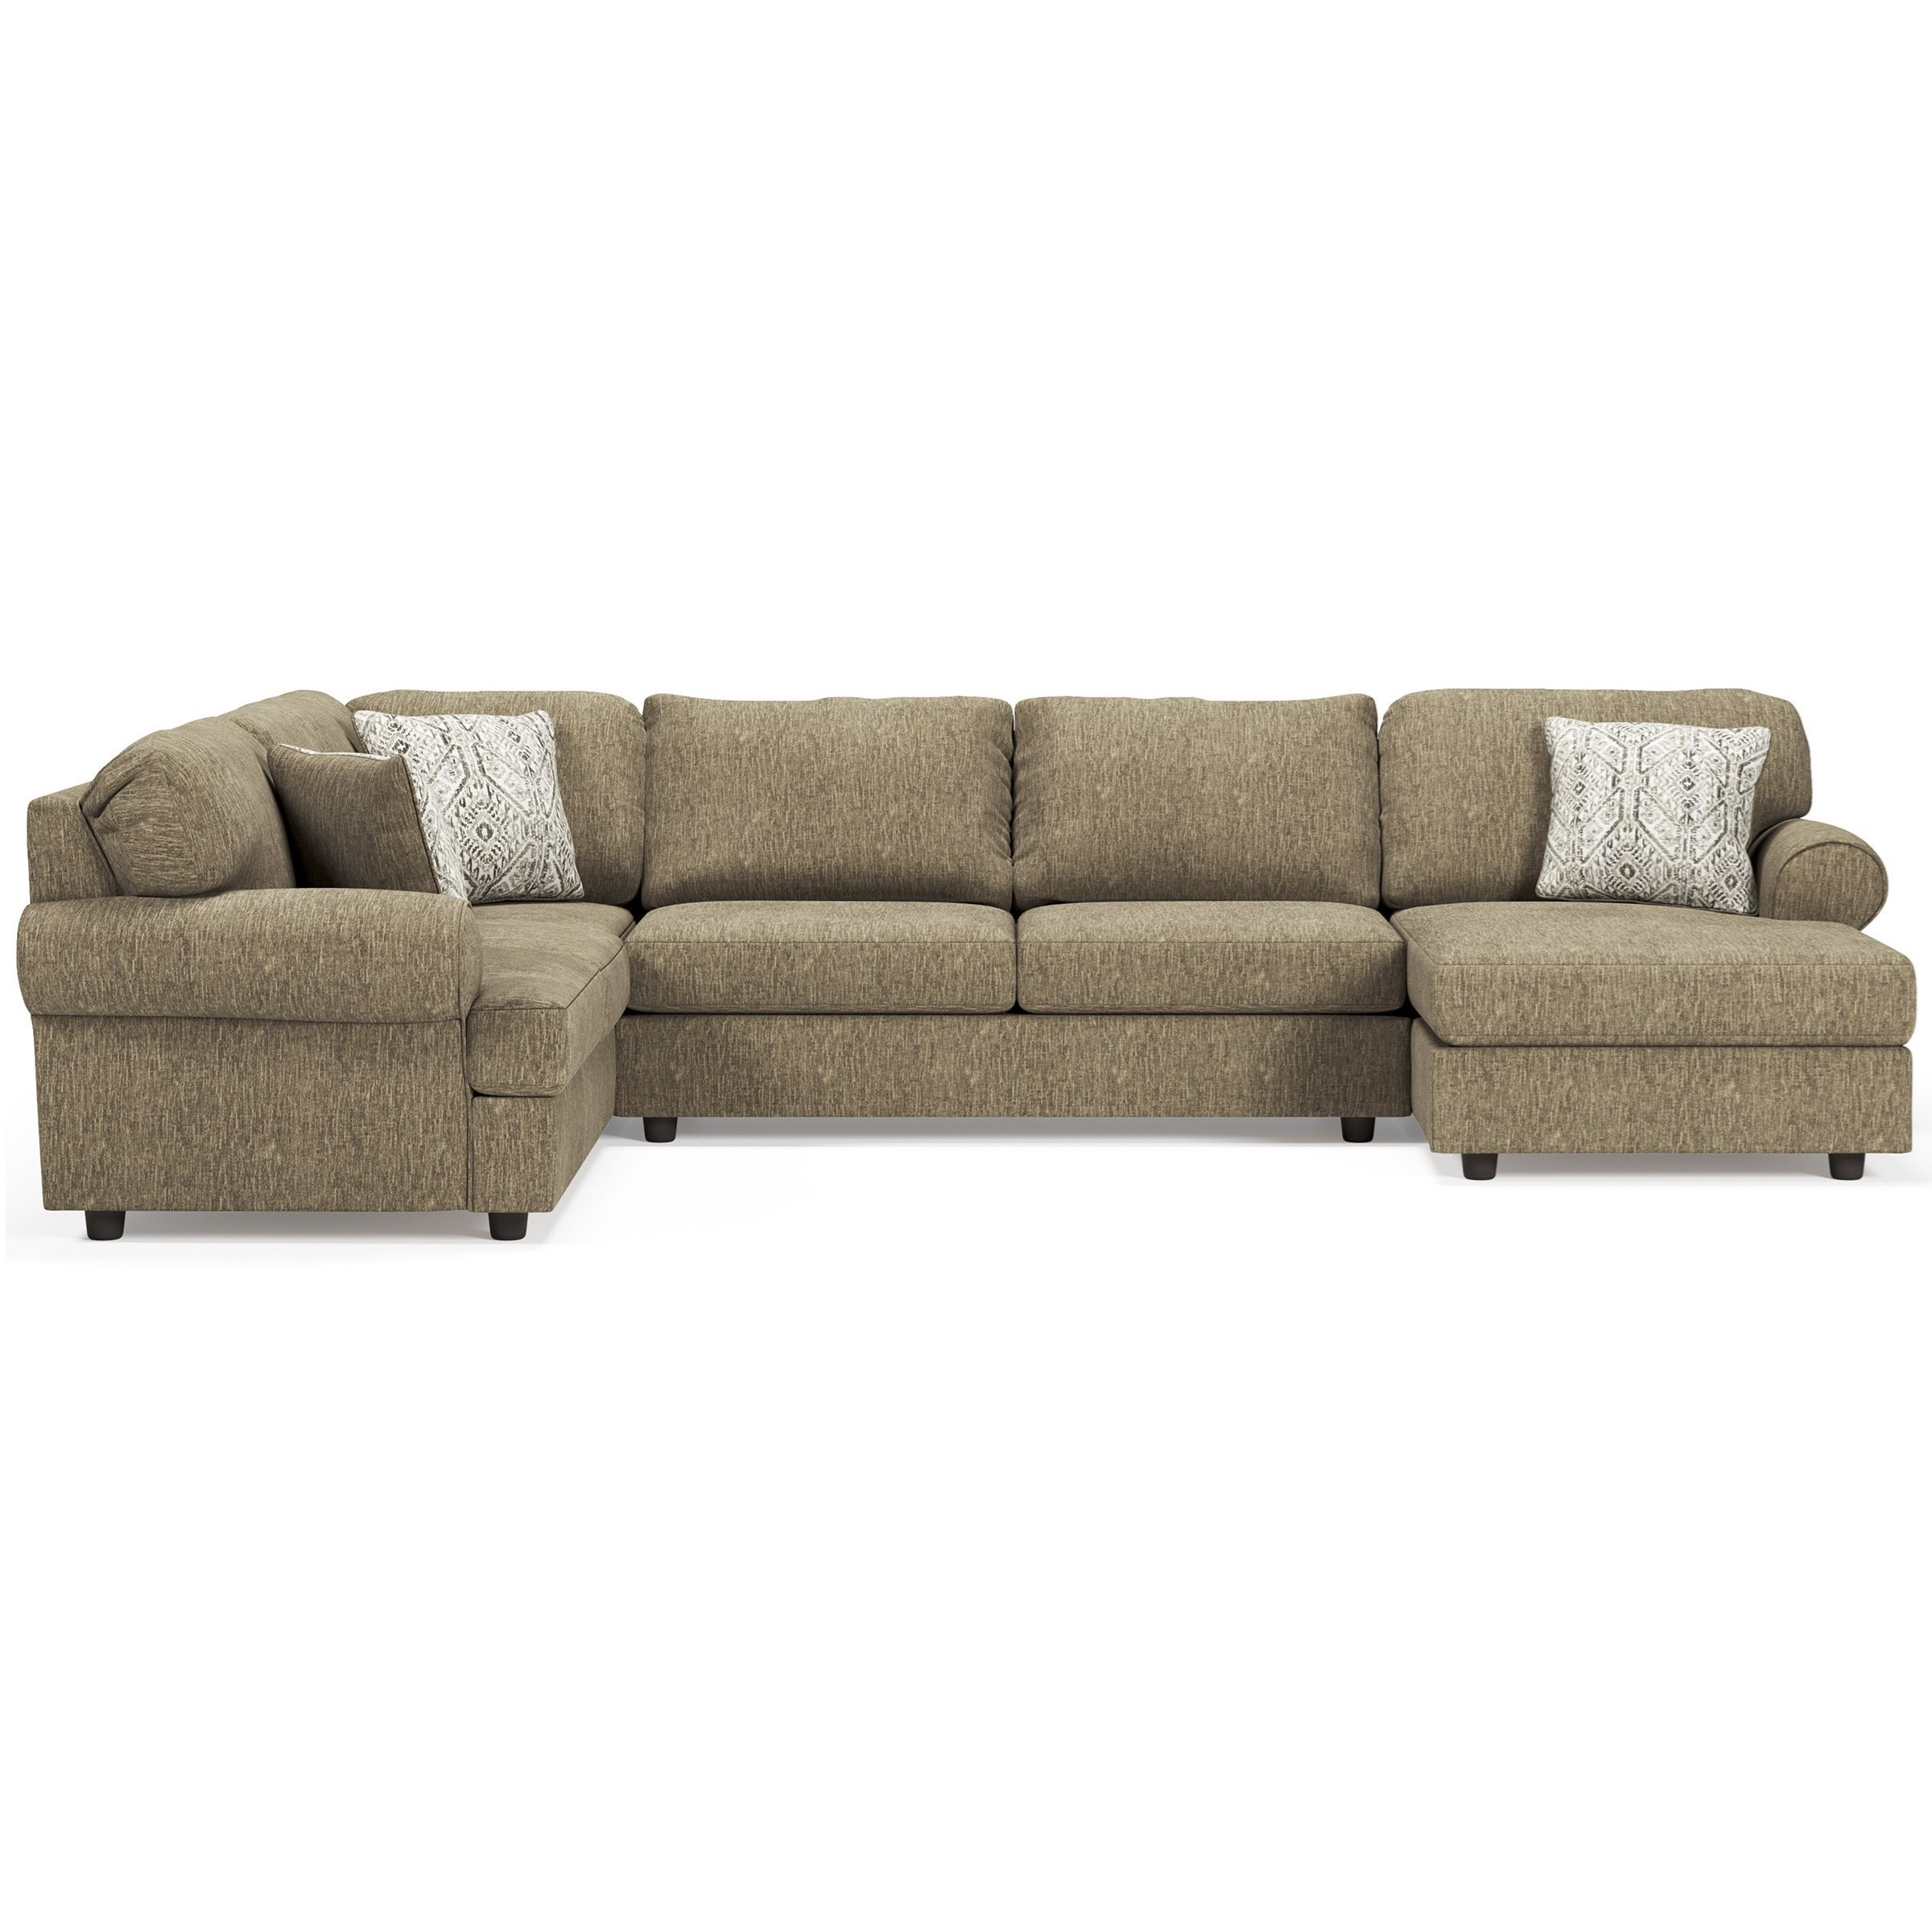 Hoylake 3-Piece Sectional with Chaise by Signature Design by Ashley at Beck's Furniture